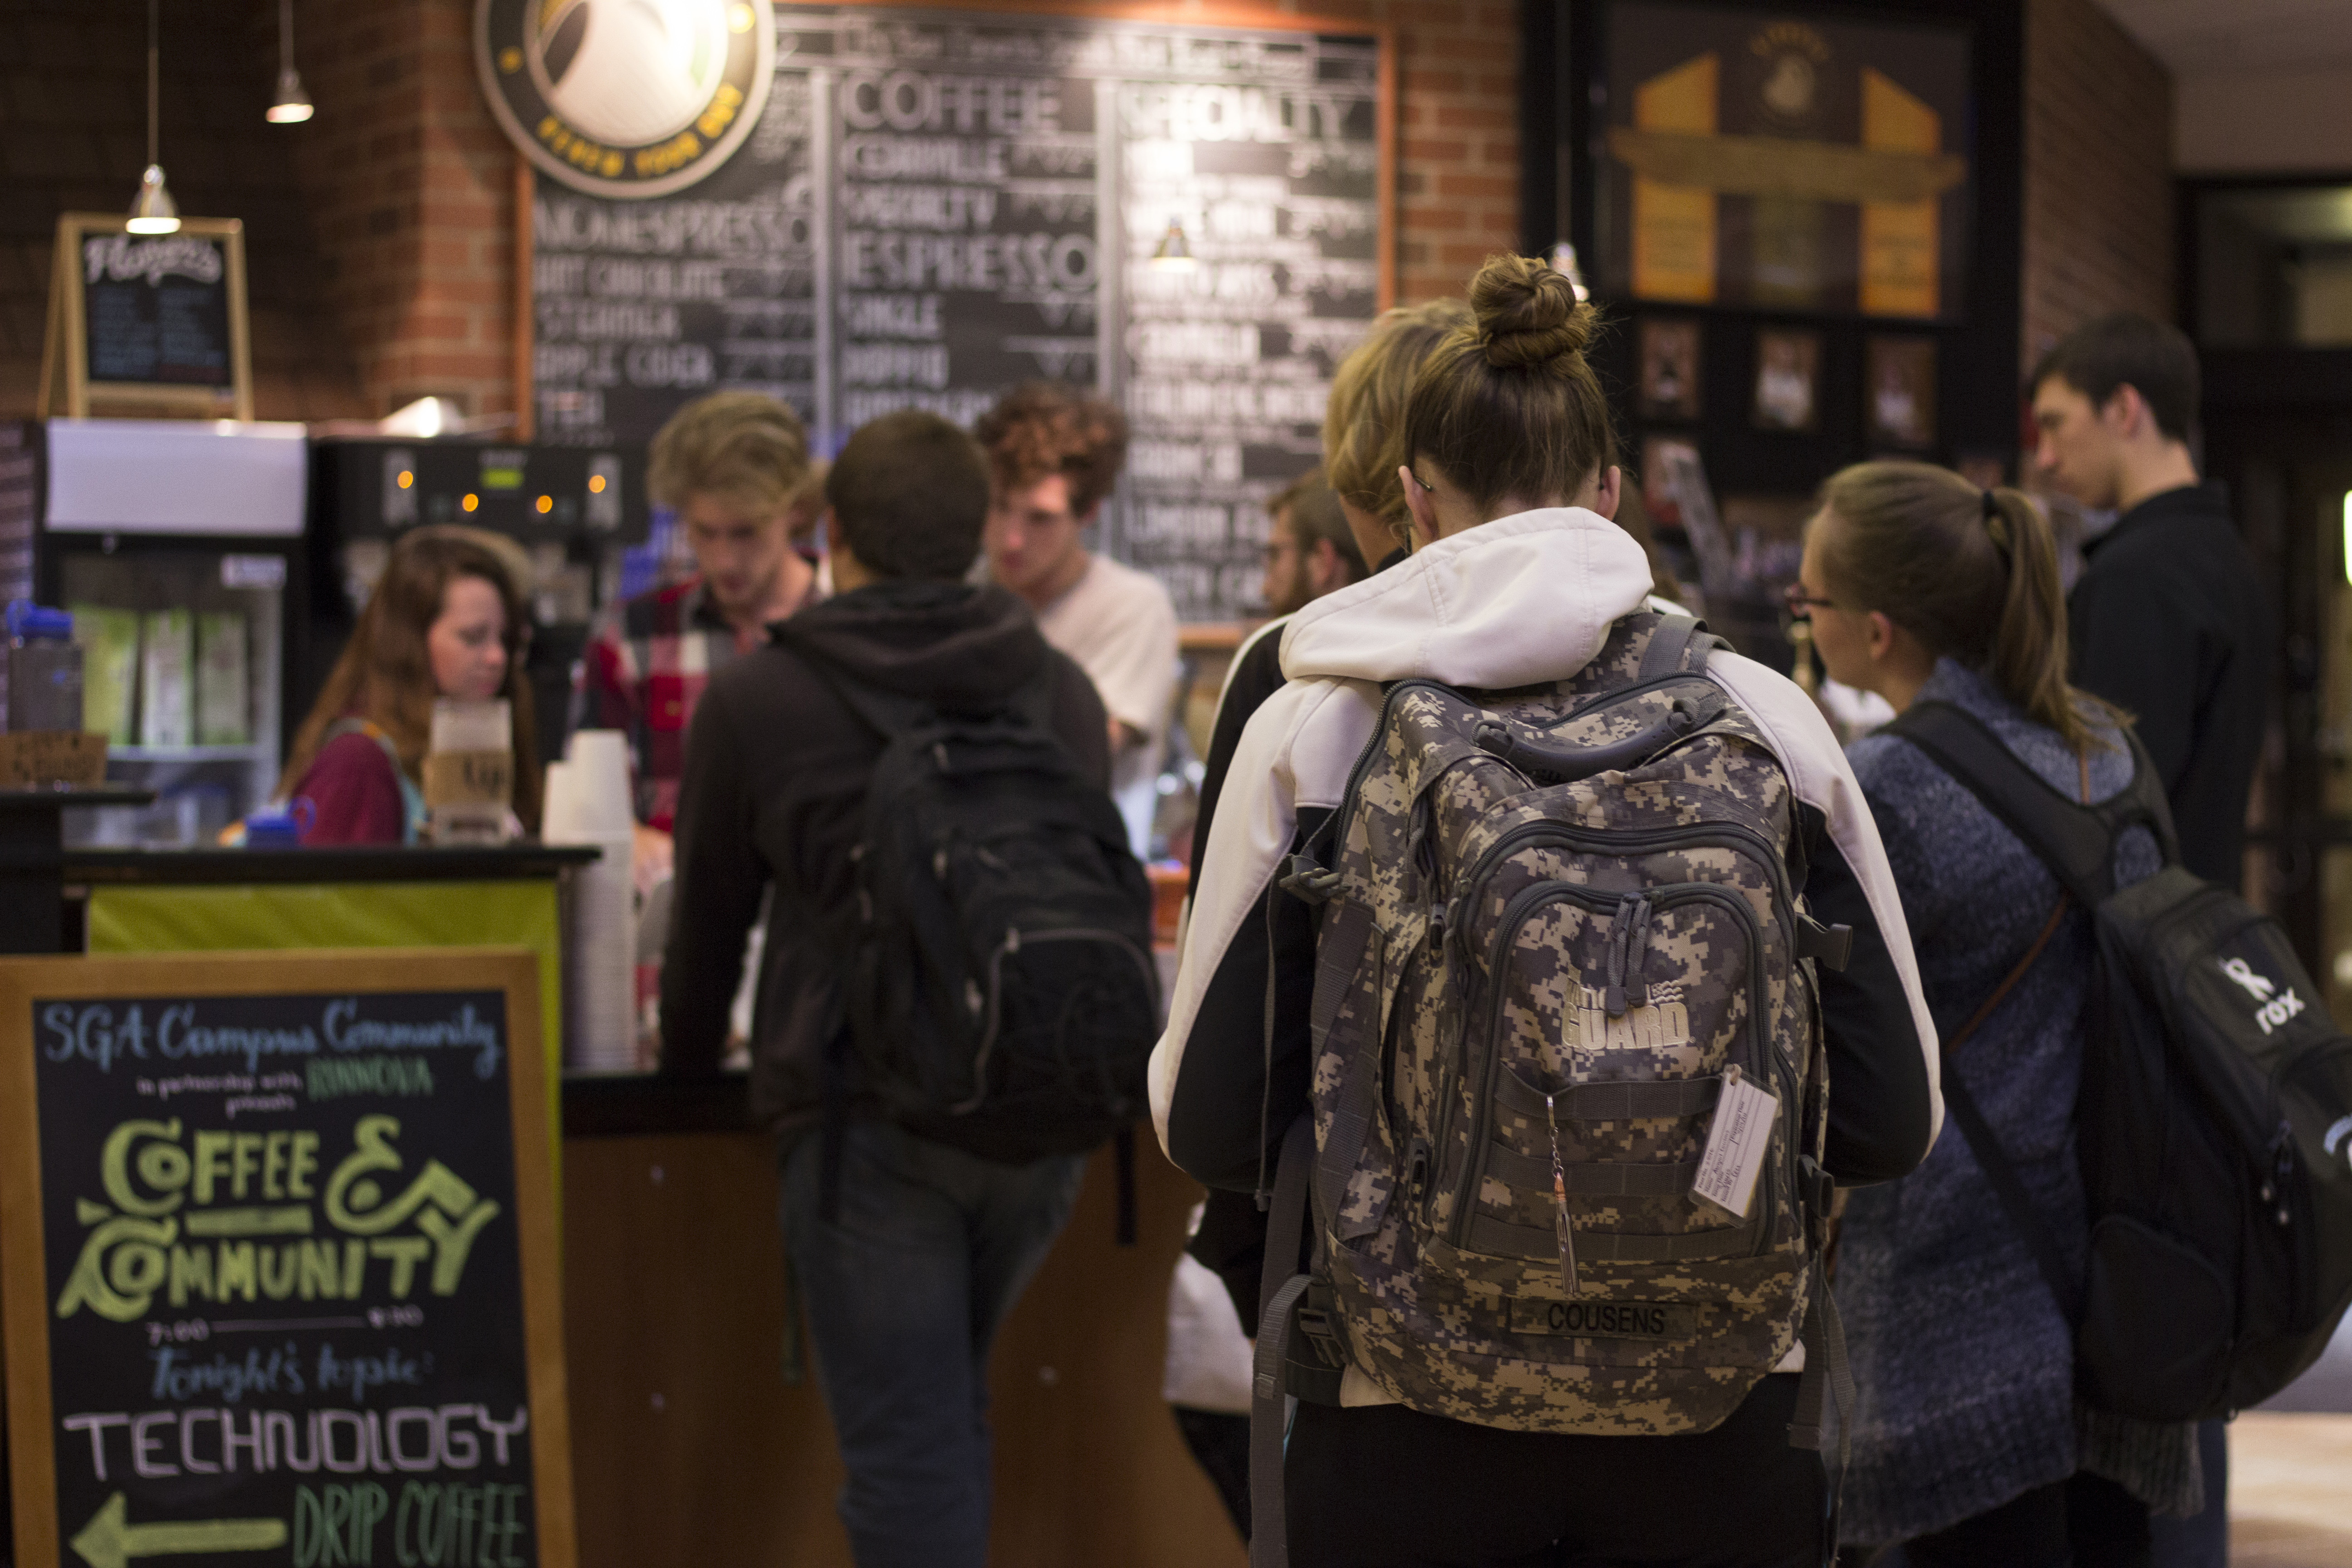 """Every Tuesday night, CU's Student Life Programs encourages students to put away technology from 7 to 8:30, filling that time by conversing with fellow students over discounted coffee from Rinnova. """"We are called to imitate the character of God within the church, so we should be striving to live in perfect community as God did,"""" Sumrall said. """"This is the inspiration behind Coffee & Community."""""""